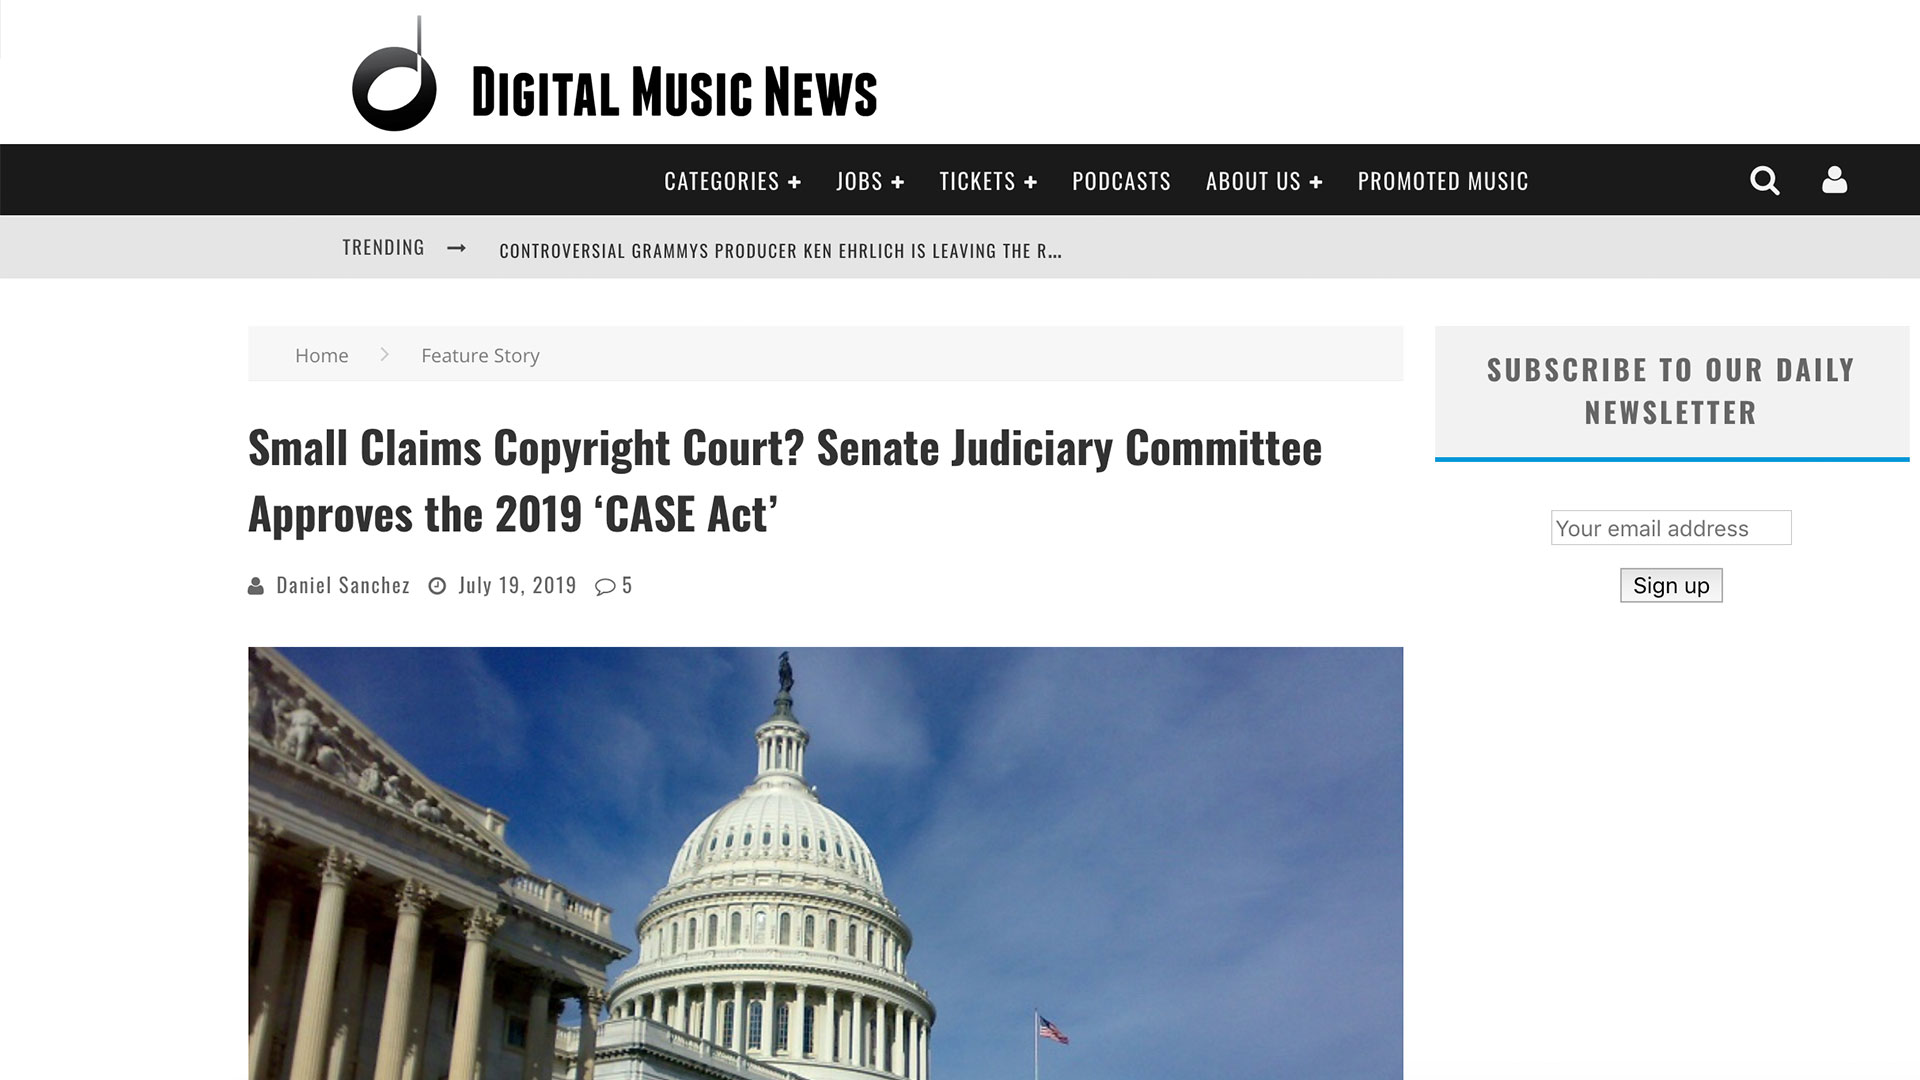 Fairness Rocks News Small Claims Copyright Court? Senate Judiciary Committee Approves the 2019 'CASE Act'